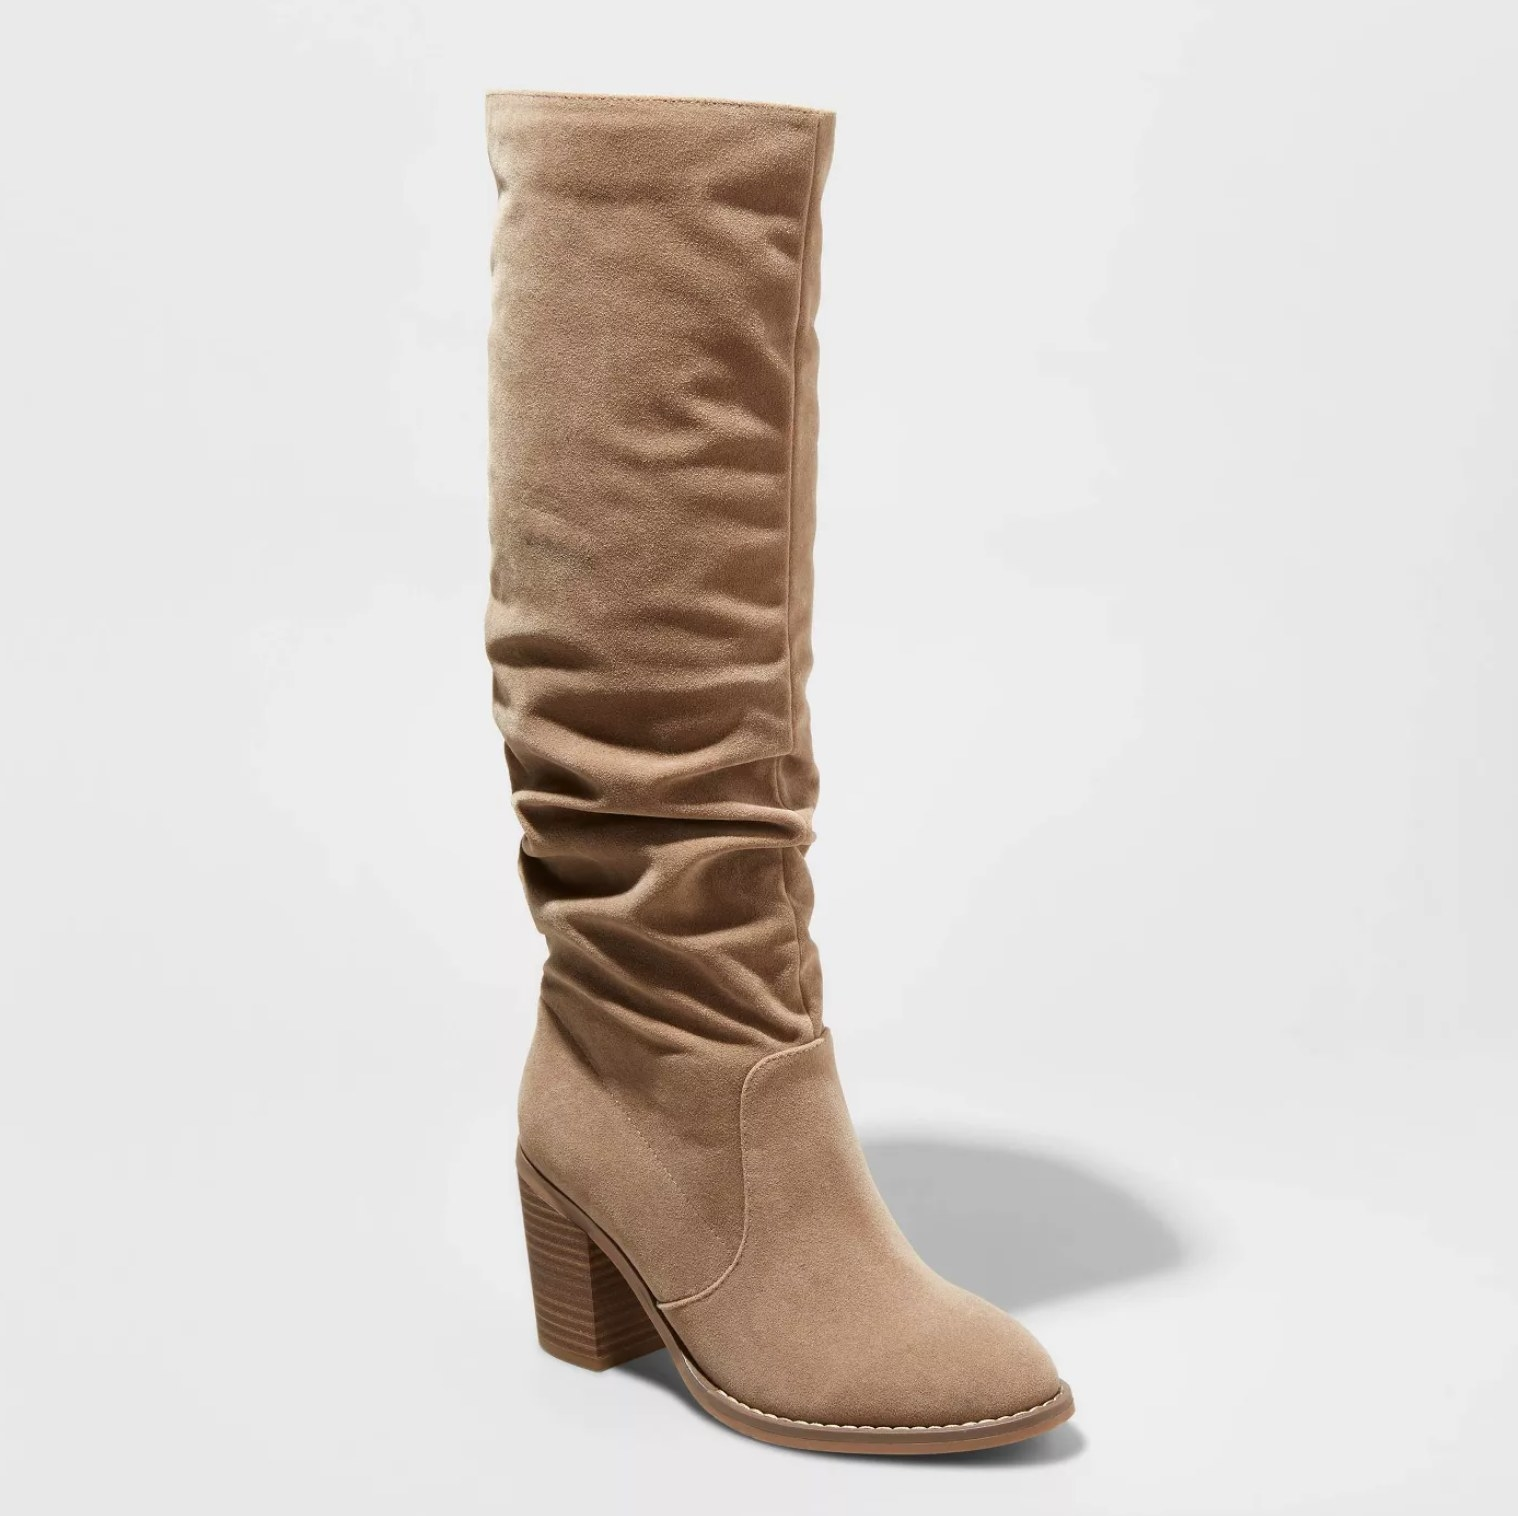 The boots in taupe